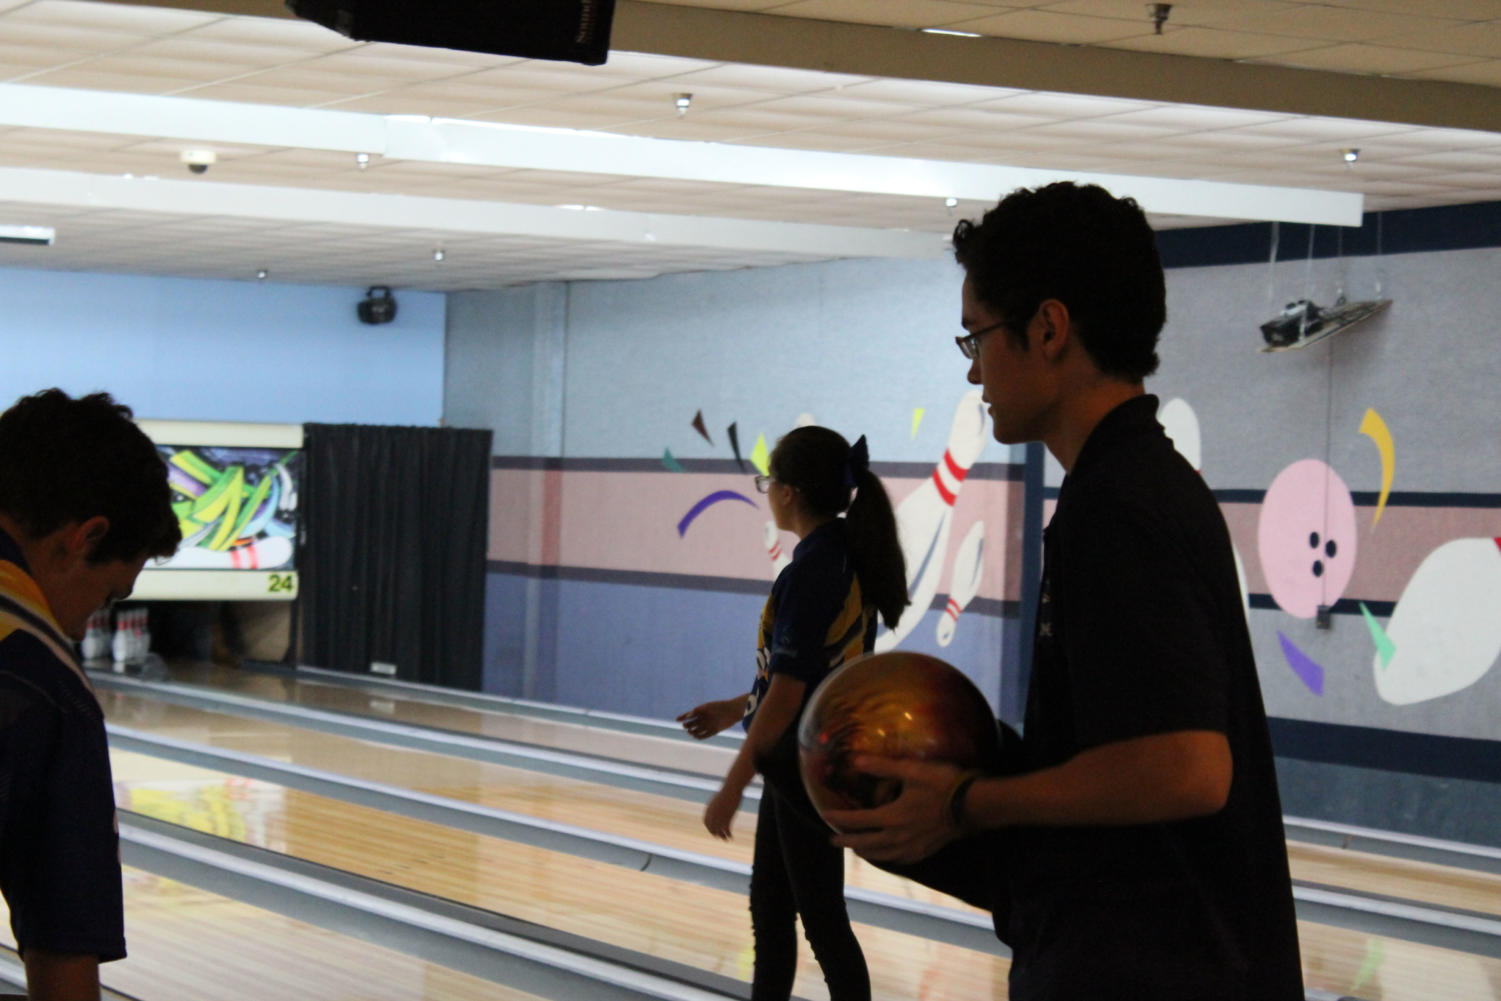 Senior+Austin+Ray+prepares+to+begin+his+turn+during+the+bowling+tournament++at+Oviedo+Lanes+on+Monday%2C+August+27.+The+boys+used+a+piece+of+cloth+to+polish+the+balls+before+rolling.